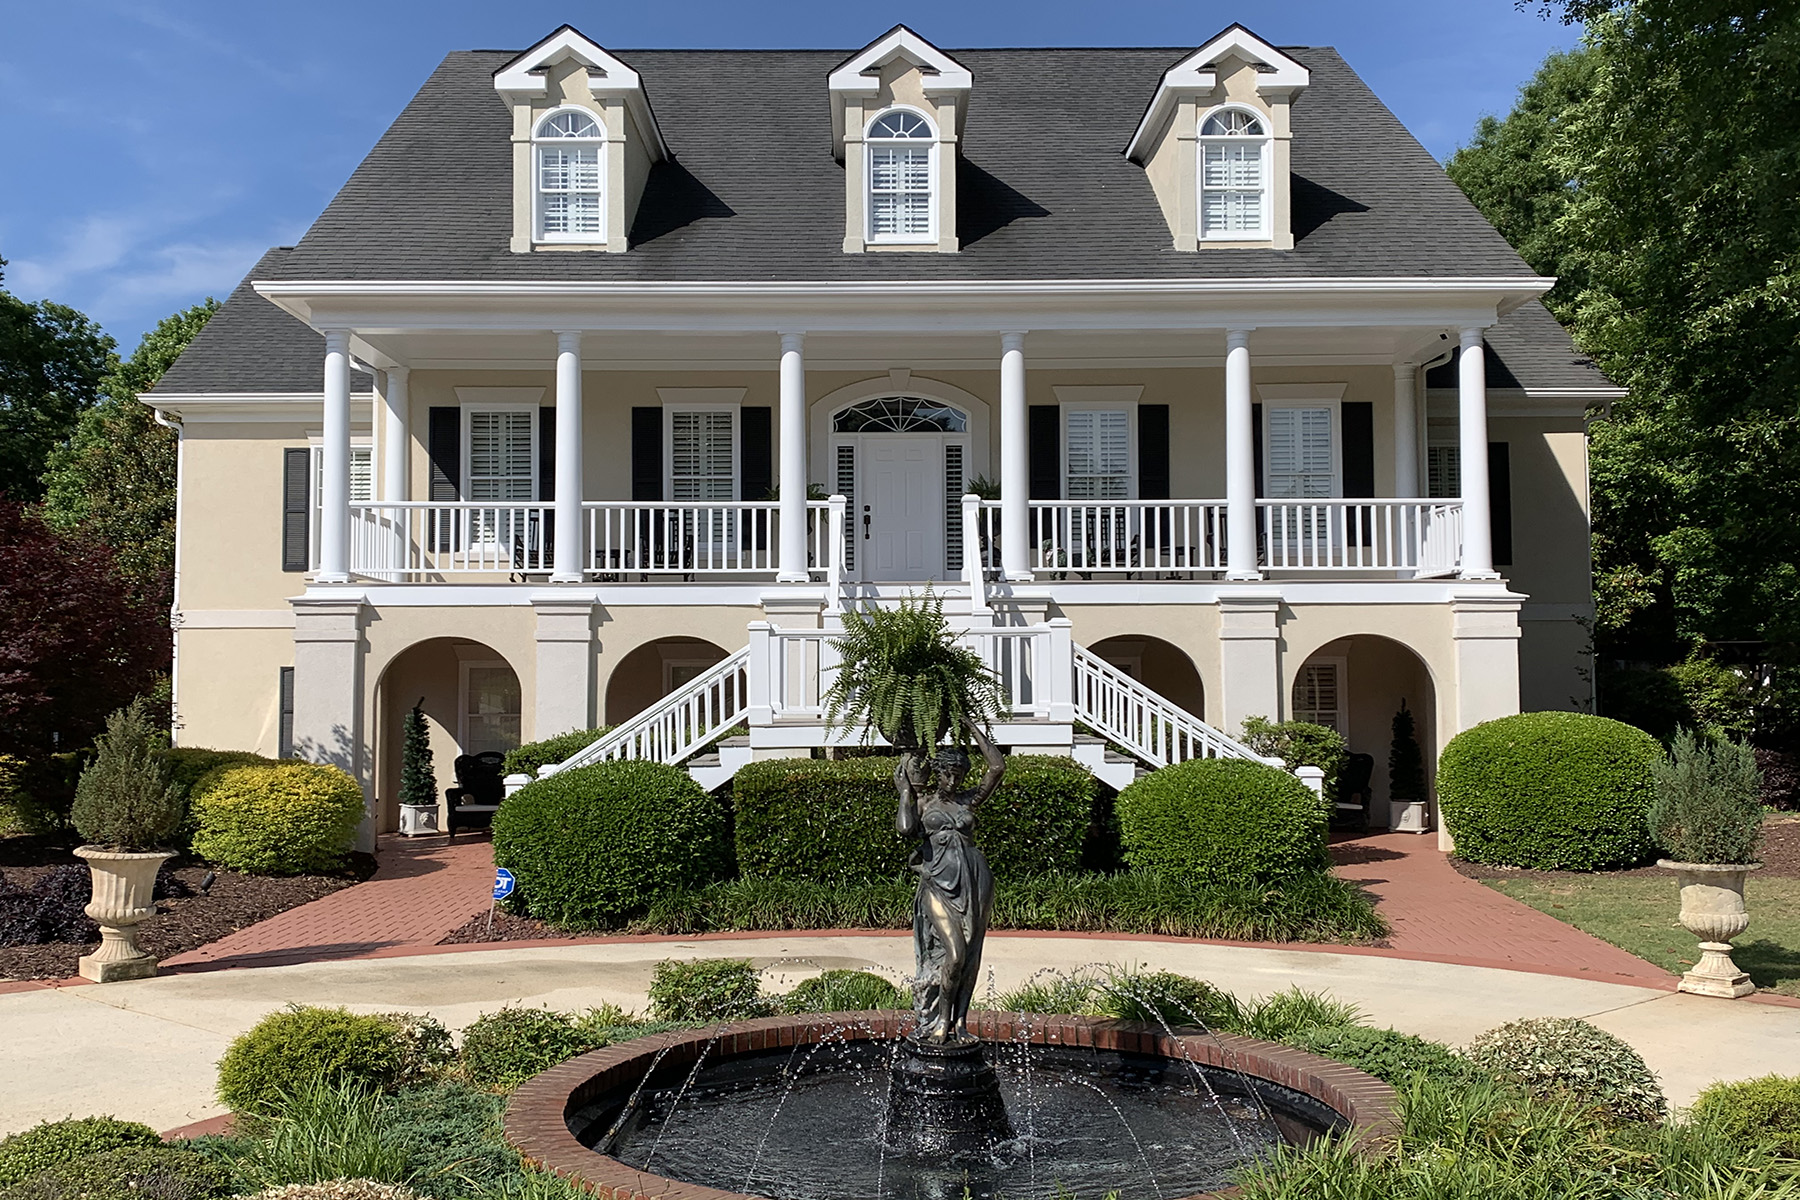 Single Family Homes للـ Sale في Discover a Gorgeous, Charming, Traditional Home in Eagles Landing Country Club 121 Glen Eagle Way, McDonough, Georgia 30253 United States